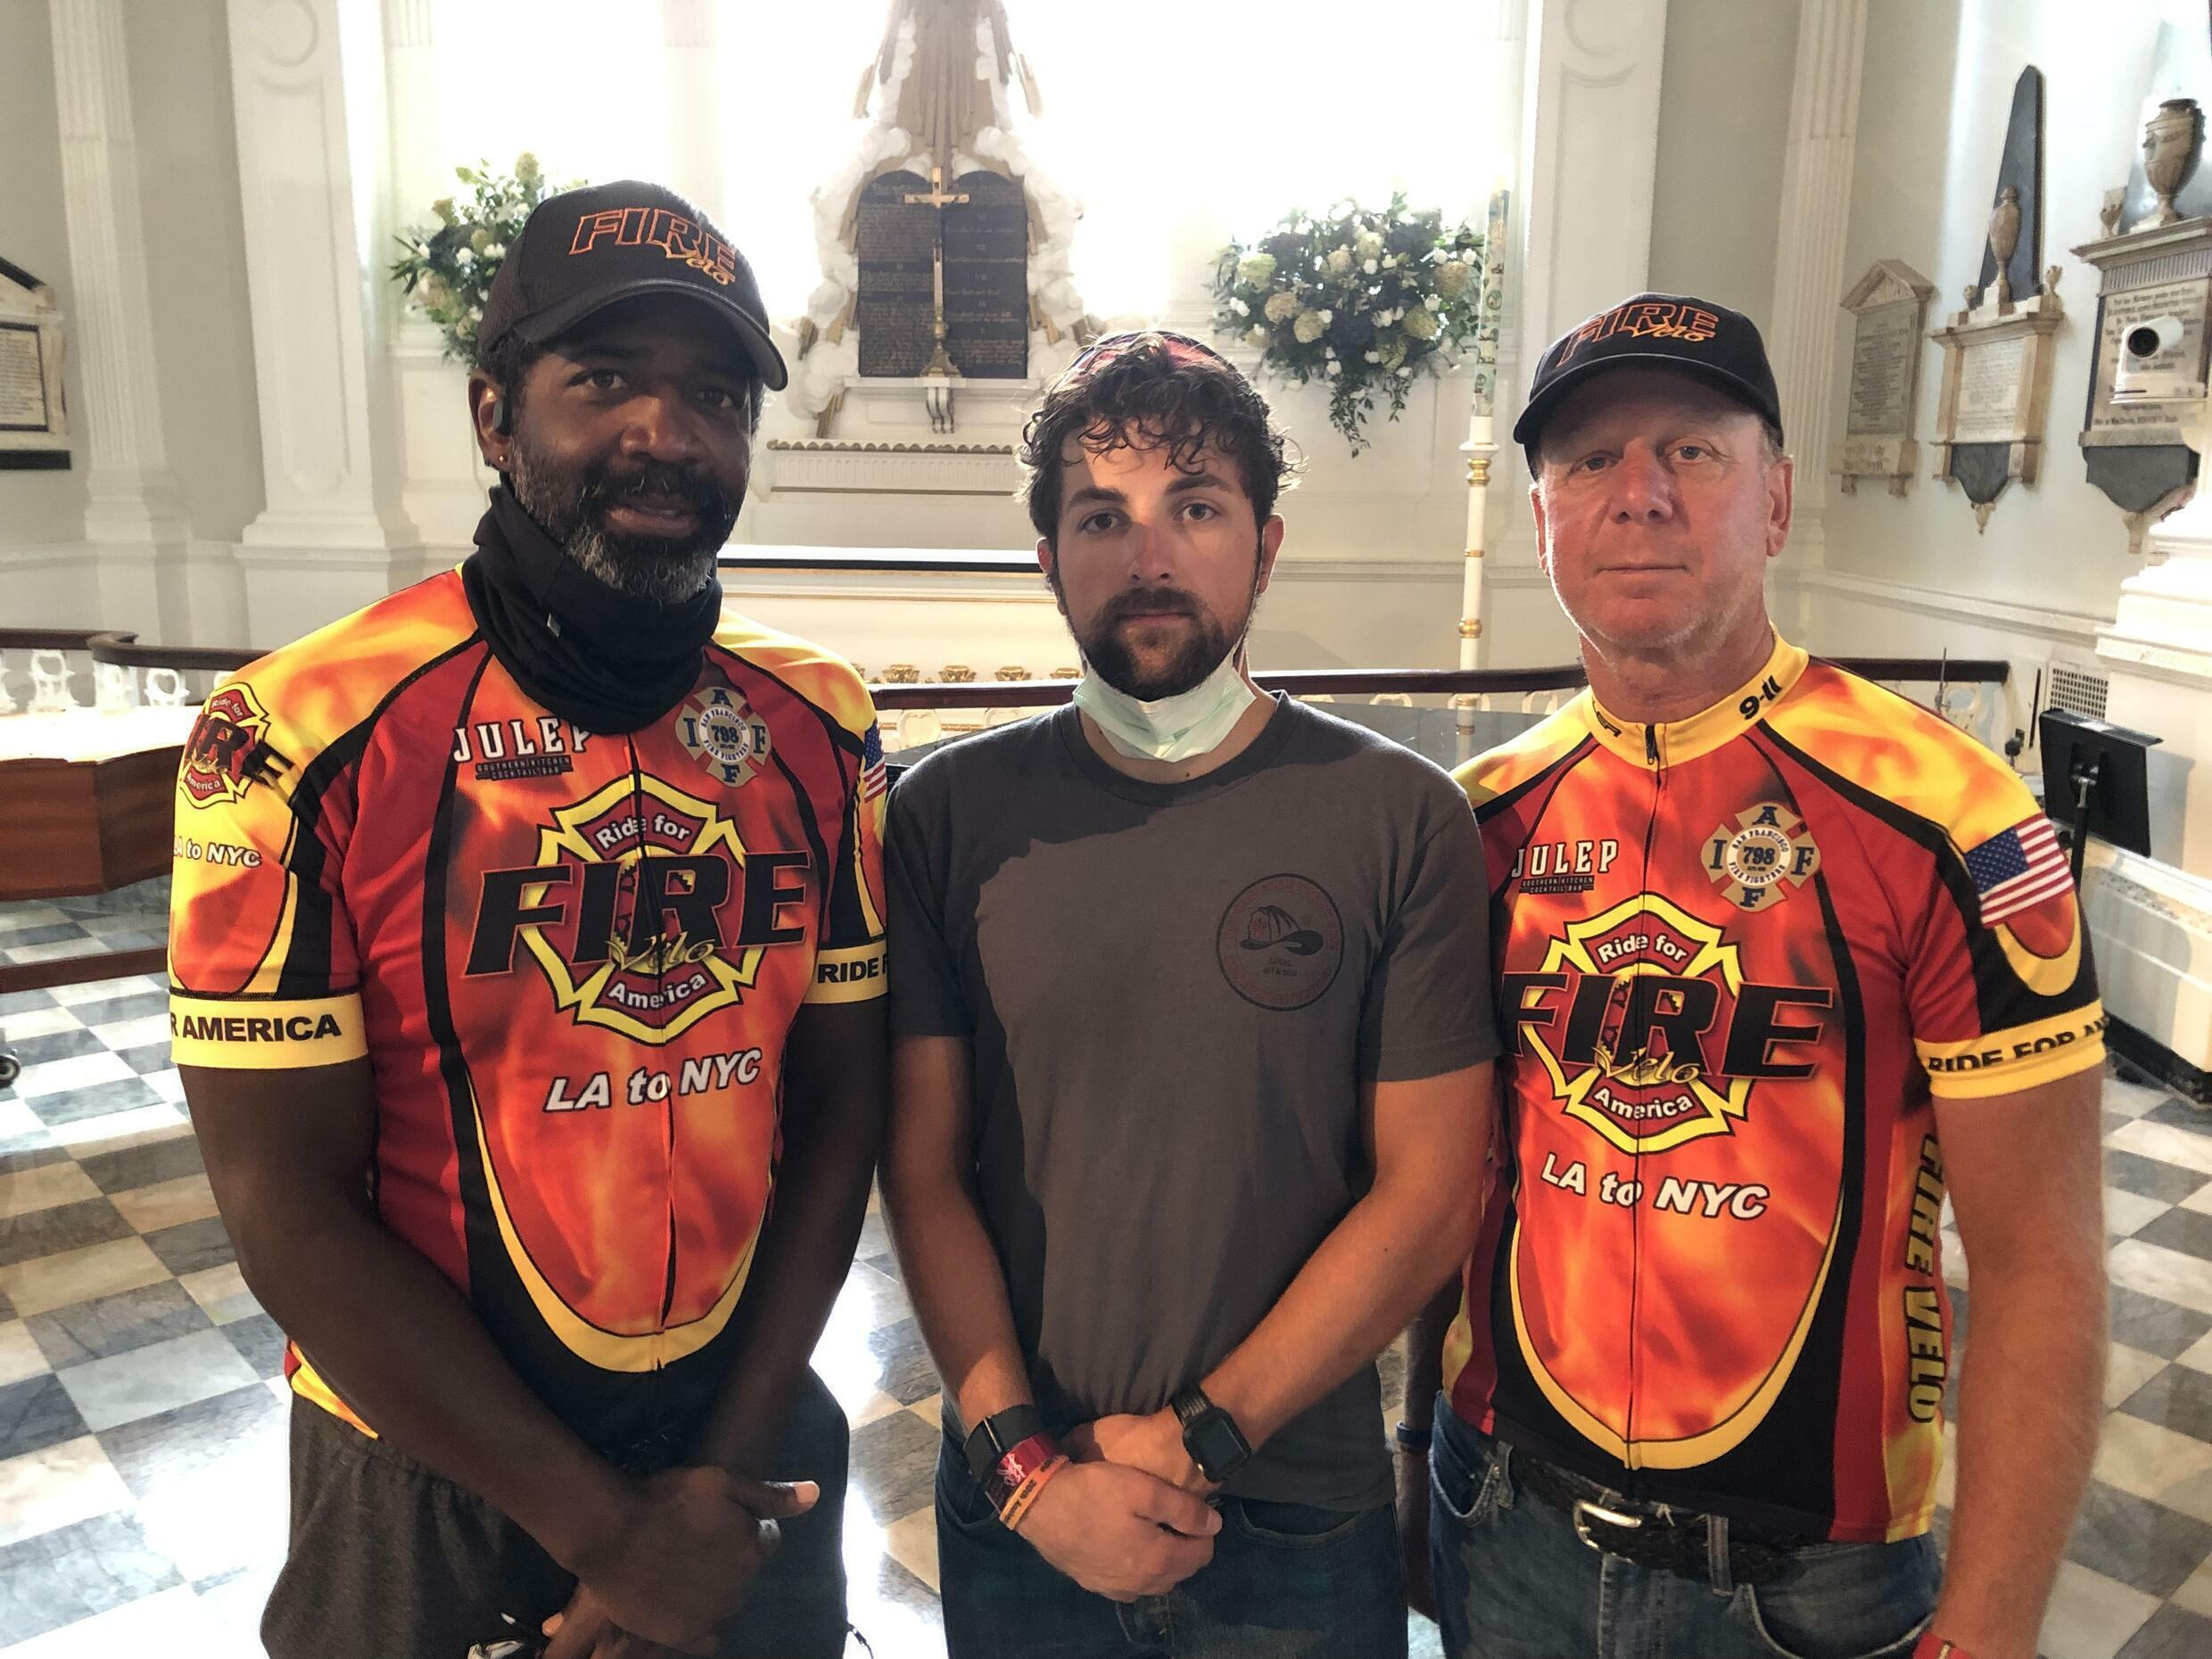 Left to right: Glenn Smith, Jamie Monroe and Joel White of Fire Velo. The group cycled from California to New York to raise money for to raise money for fellow firefighters' health care.